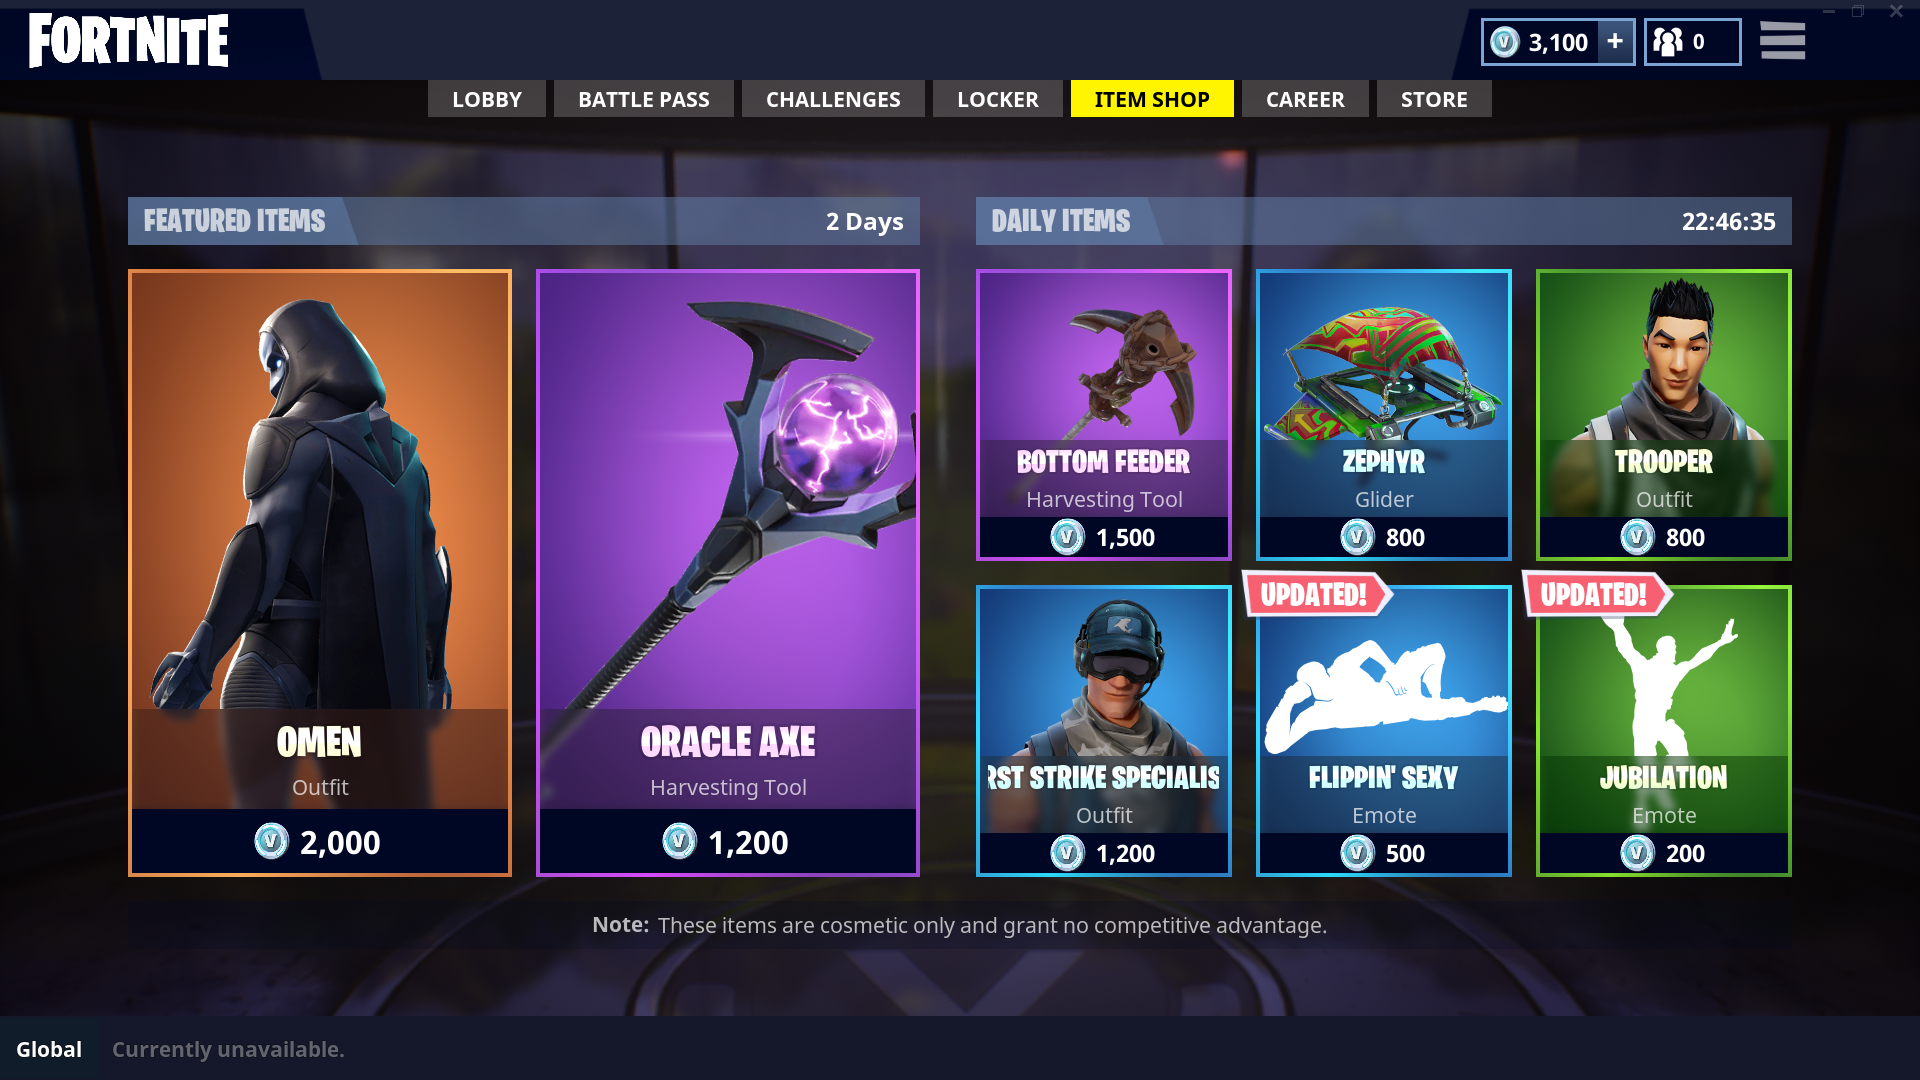 Omen Item Shop June 16